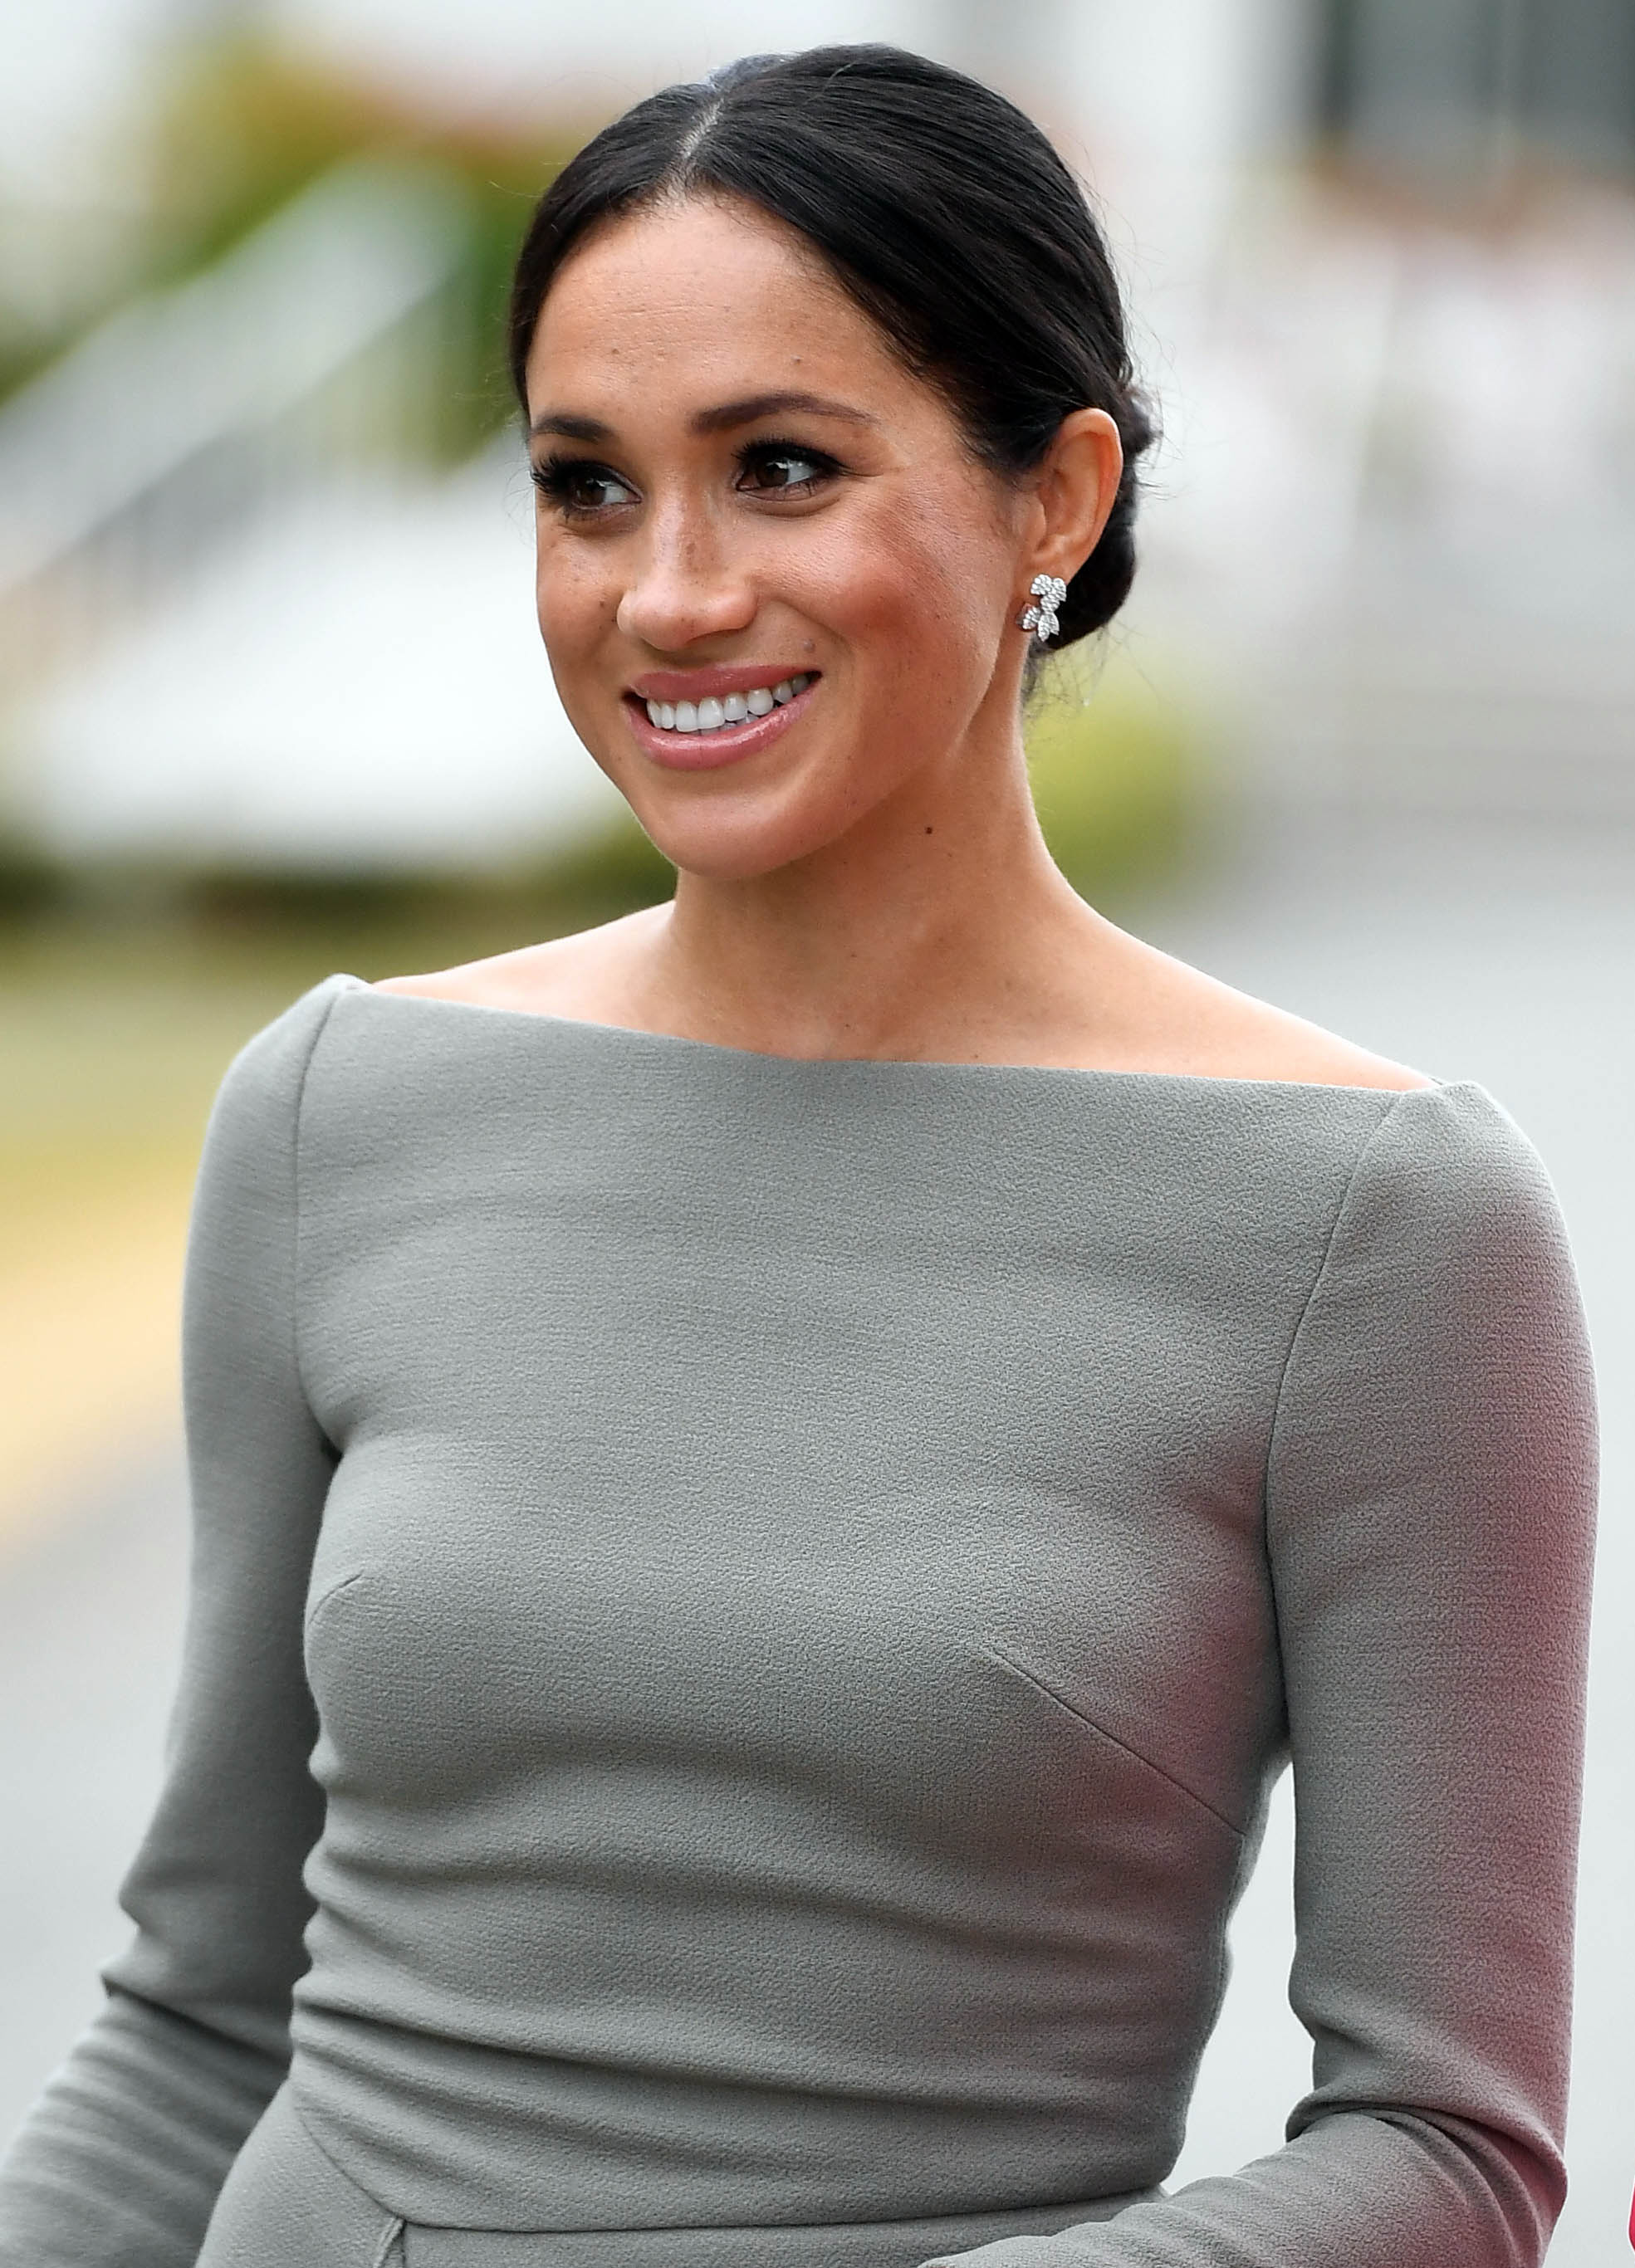 Meghan Markle in Dublin (Source: Getty Images)